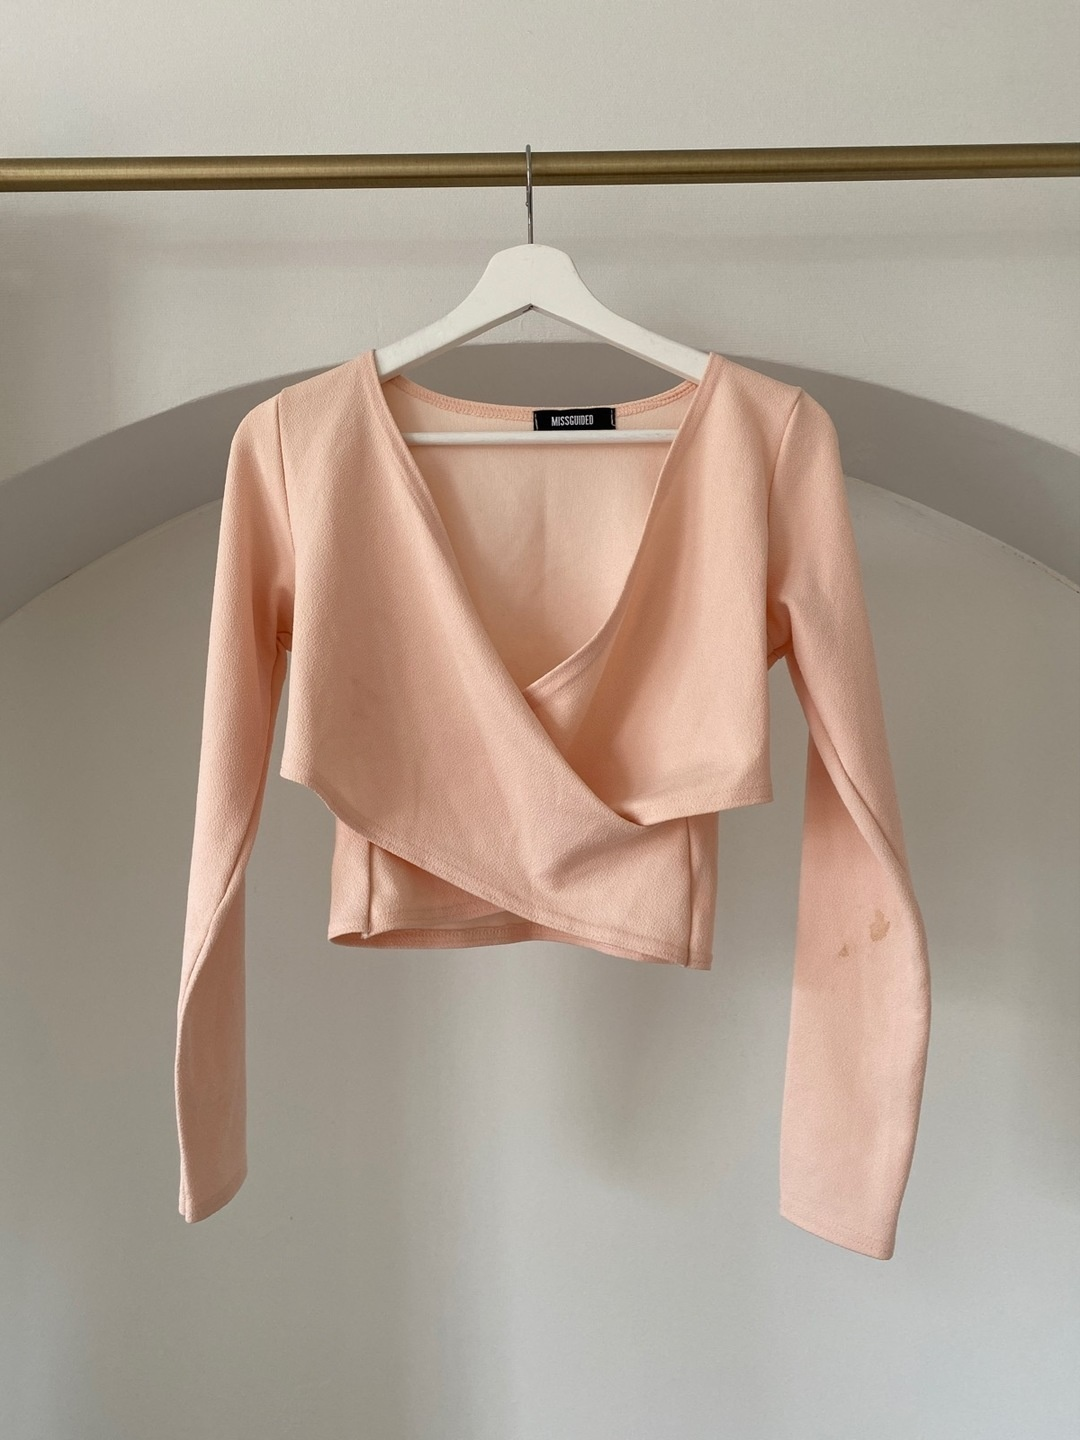 Women's blouses & shirts - MISSGUIDED photo 1